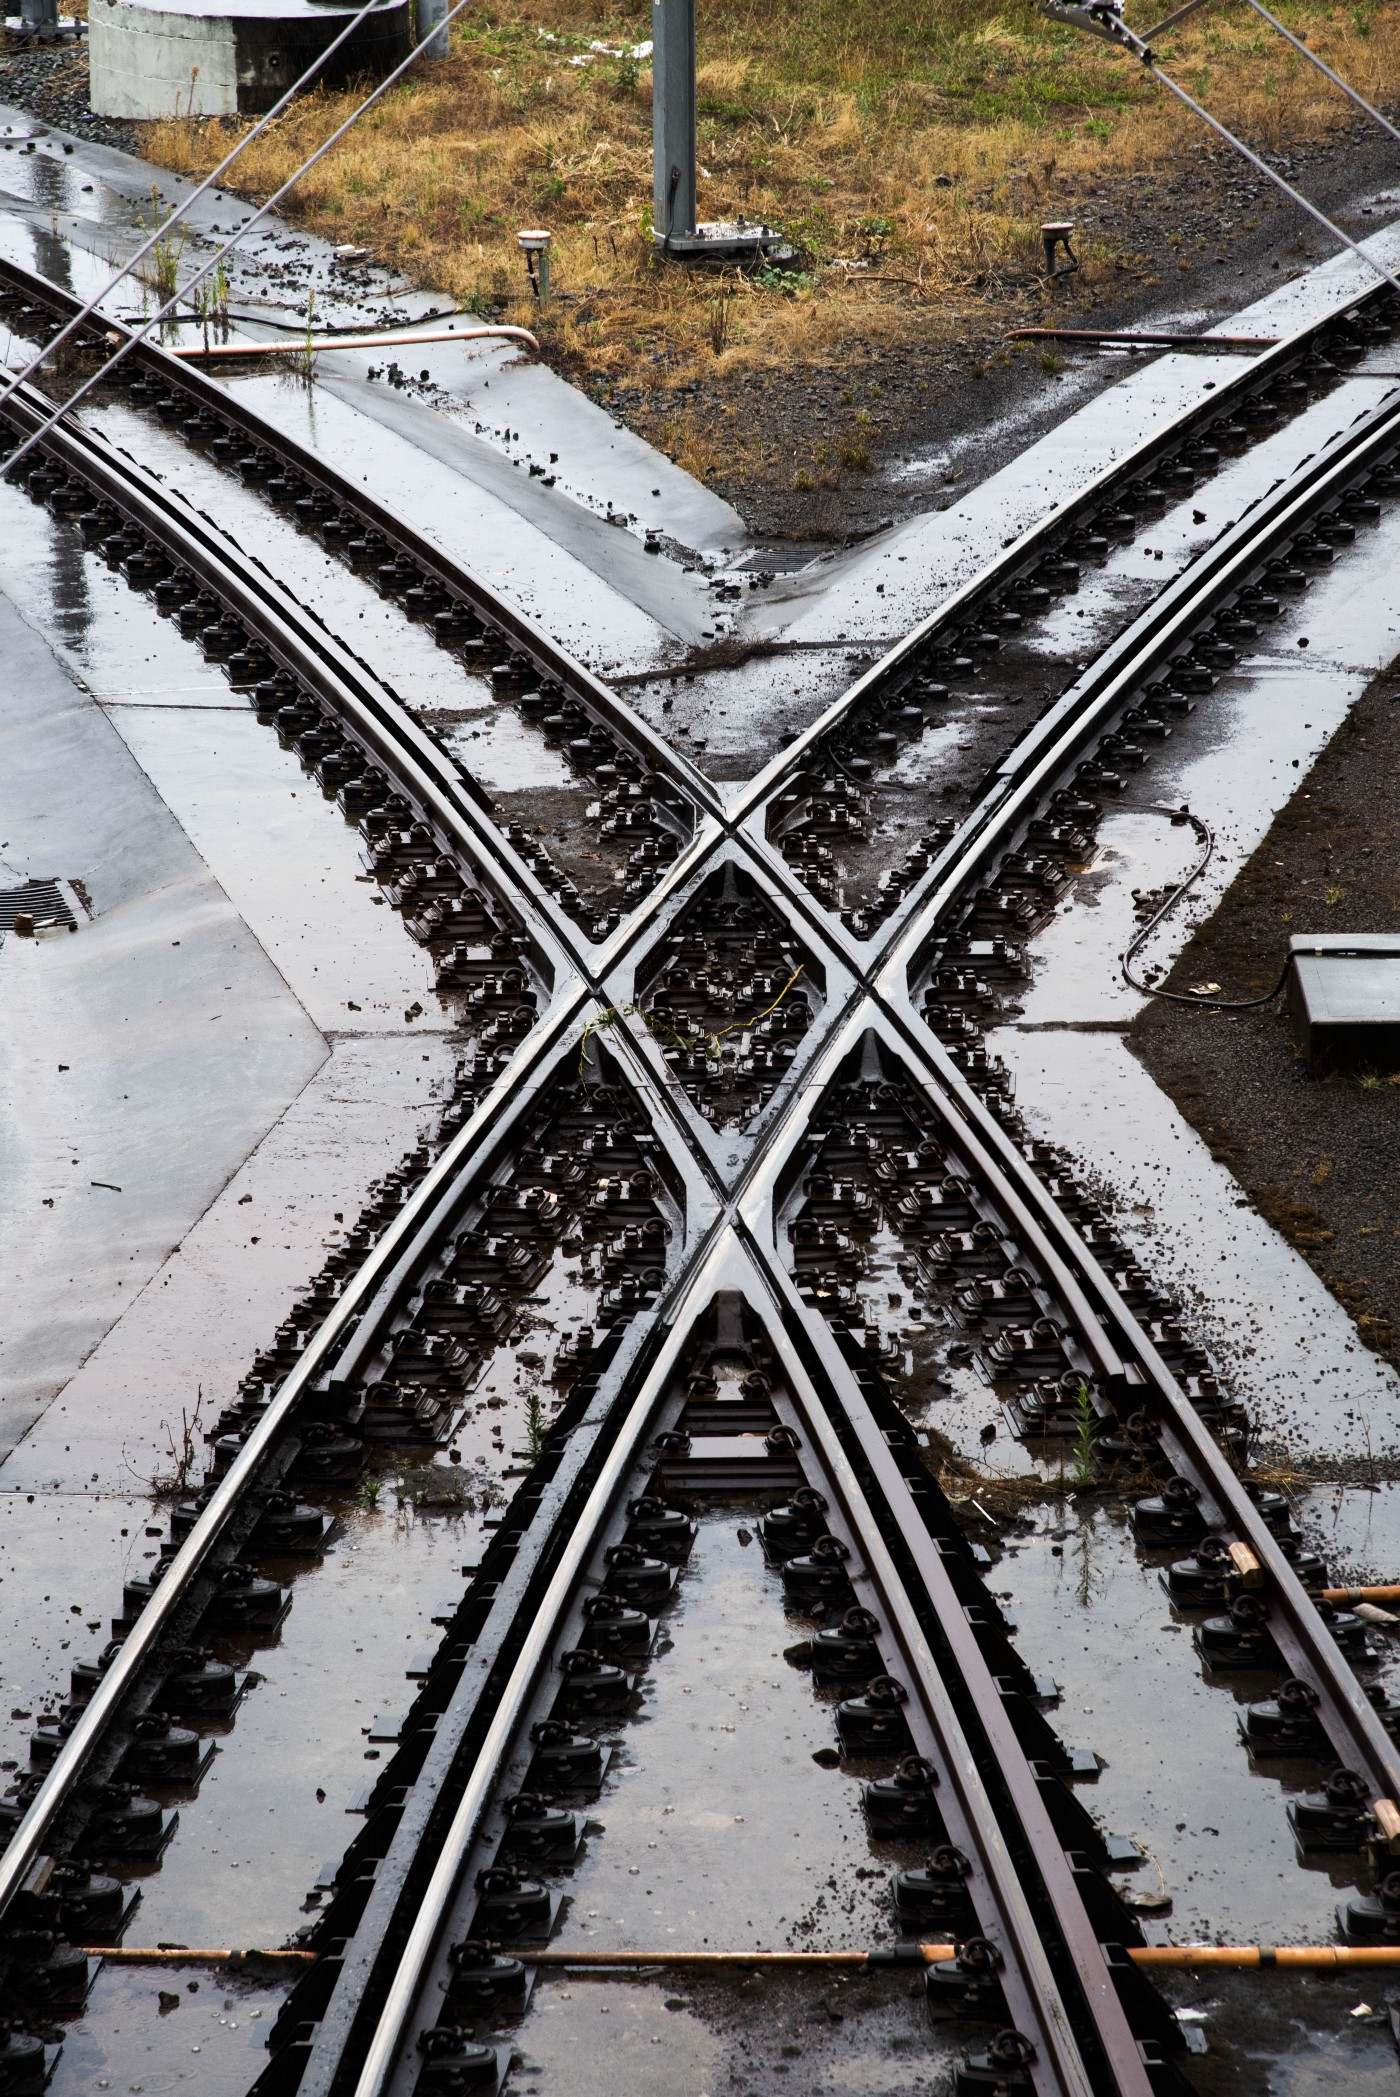 A railway track scissors-crossover in which a pair of switches connects two parallel rail tracks.